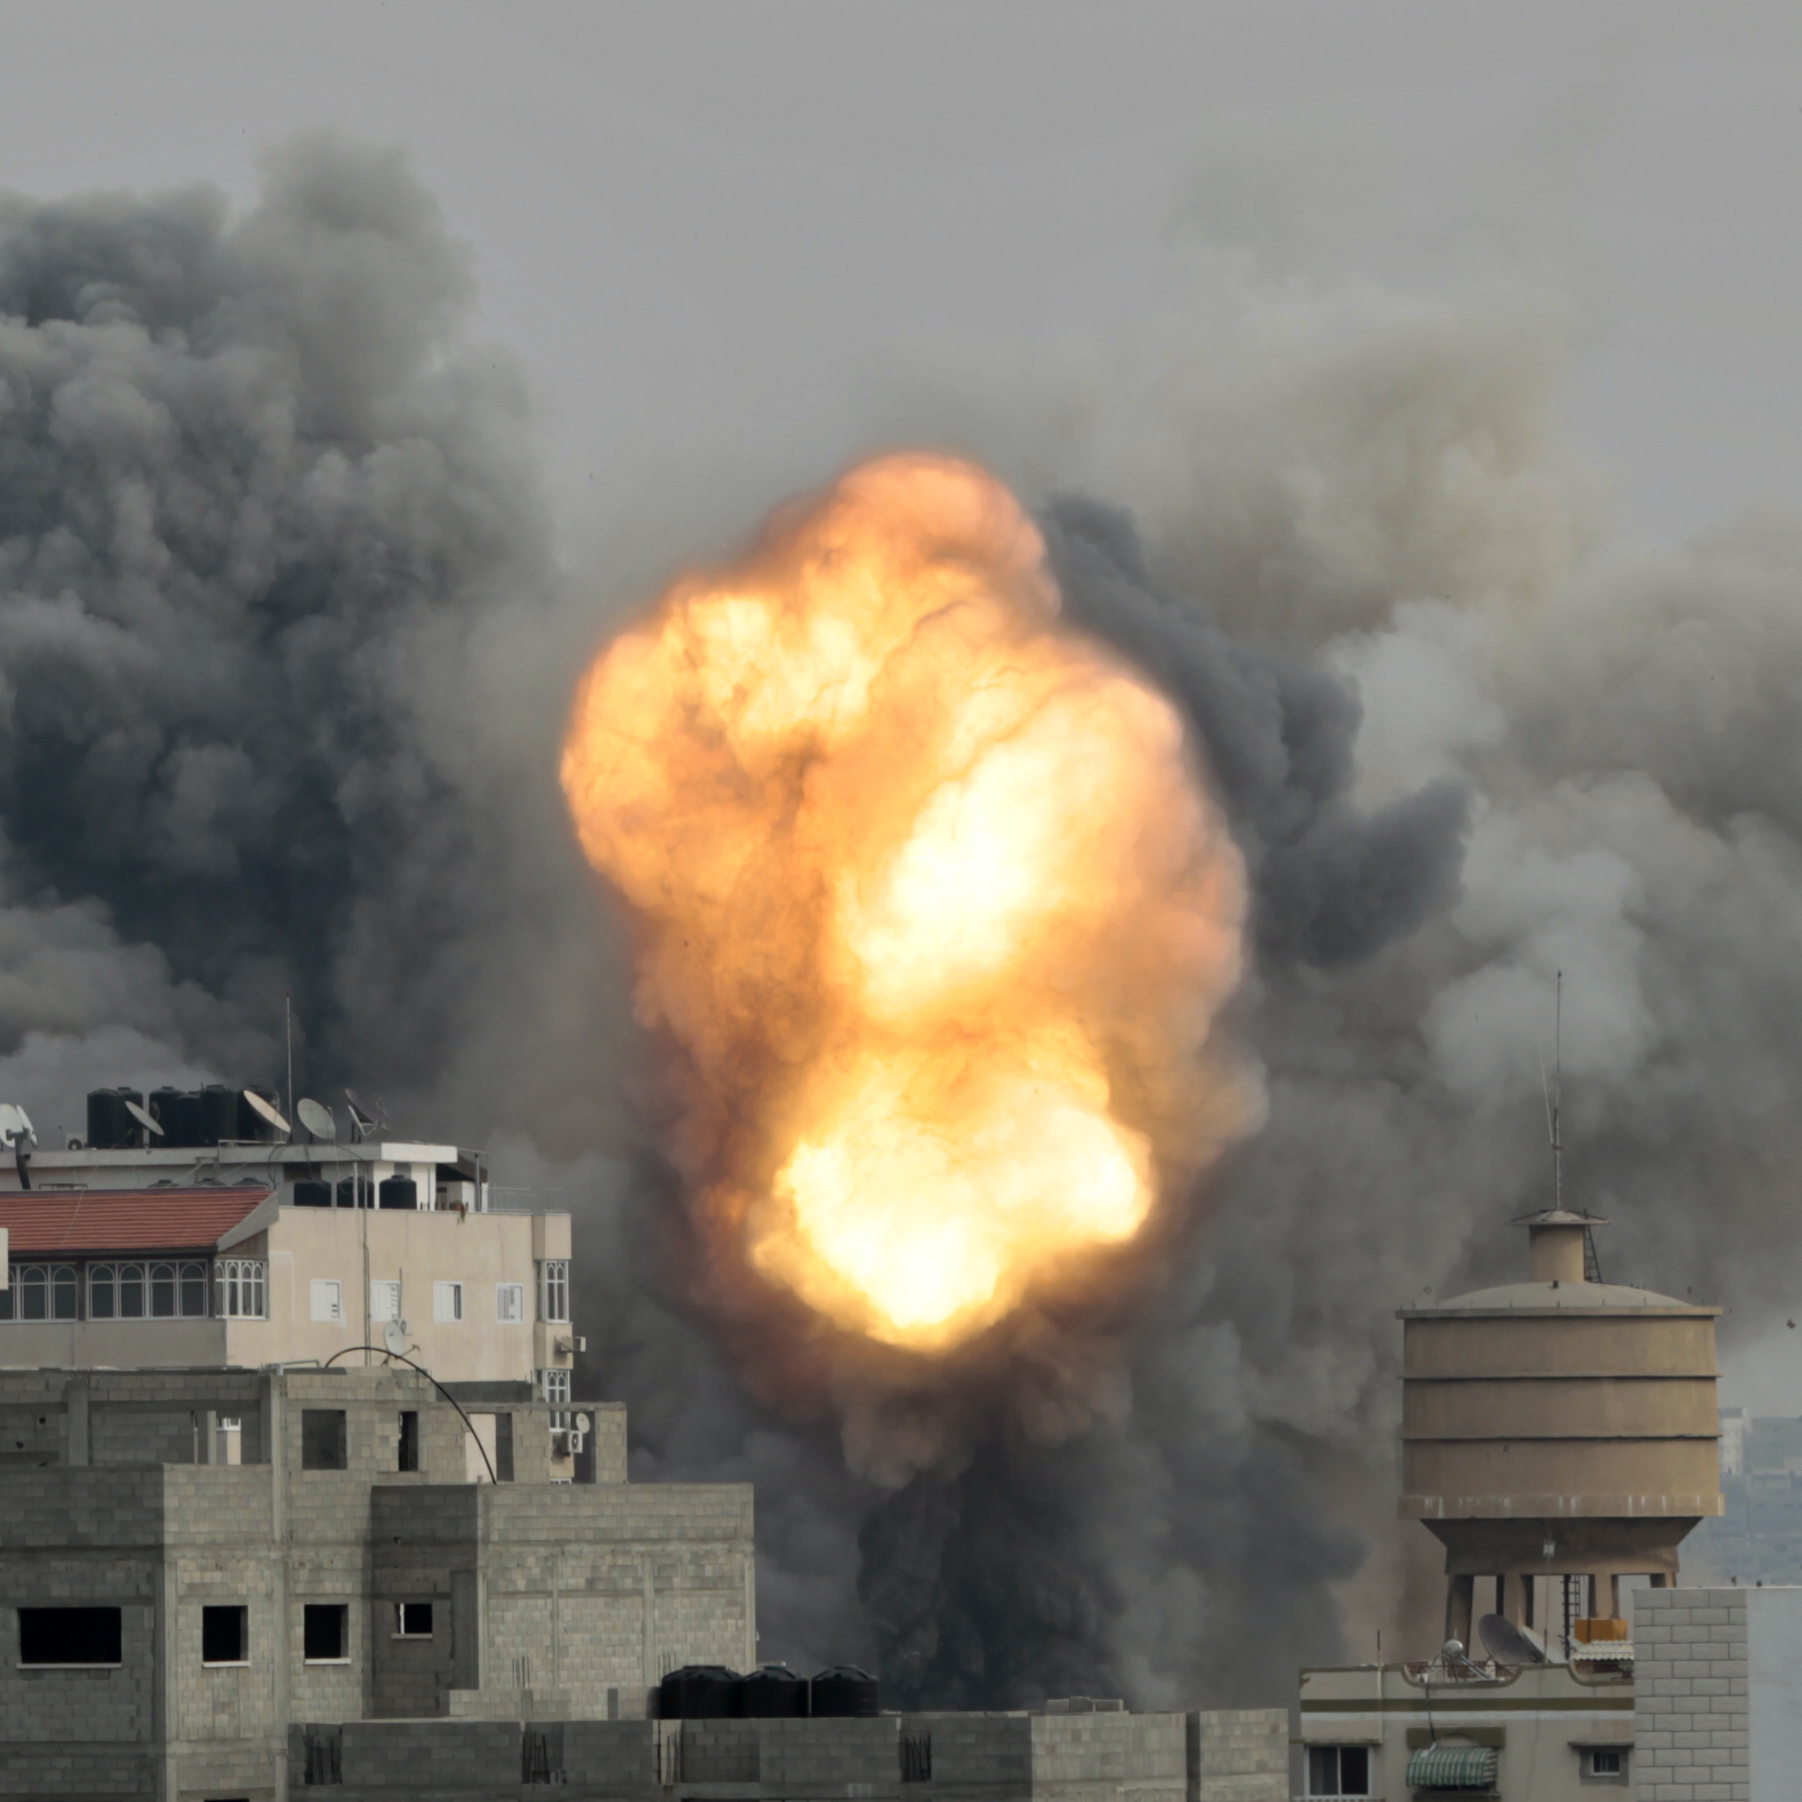 In Gaza City today, flames and smoke rise from the site hit by an air strike from Israeli forces.